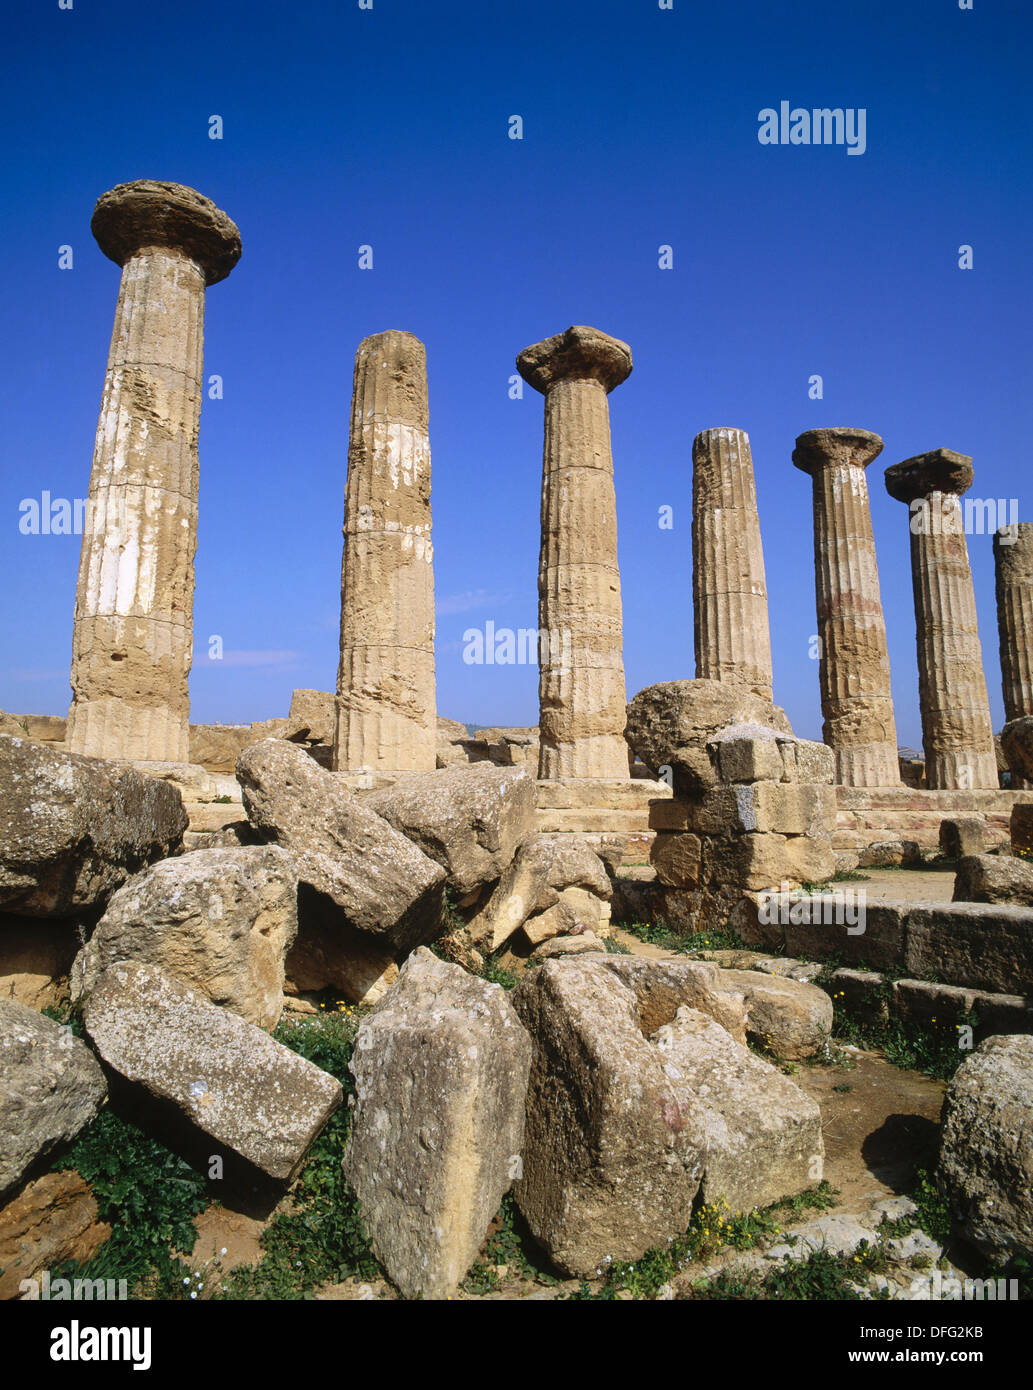 The Temple of Castor & Pollux (5th century BC), Valley of the Temples (Sicily´s Oldest Tourist Site), Agrigento. Sicily, Italy - Stock Image